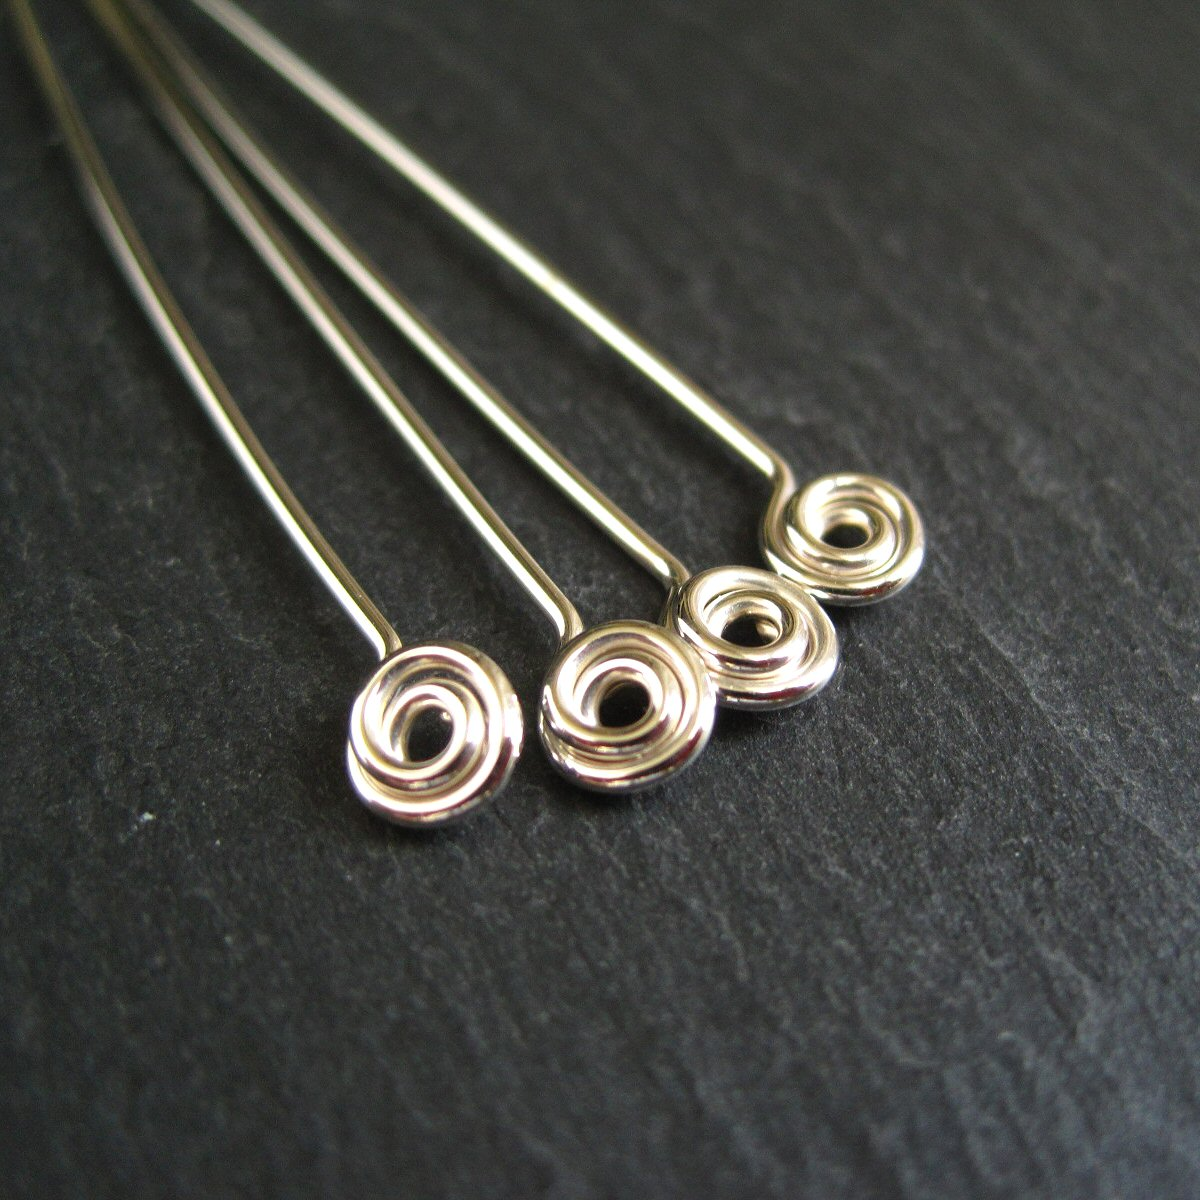 Sterling Silver Swirl Headpins